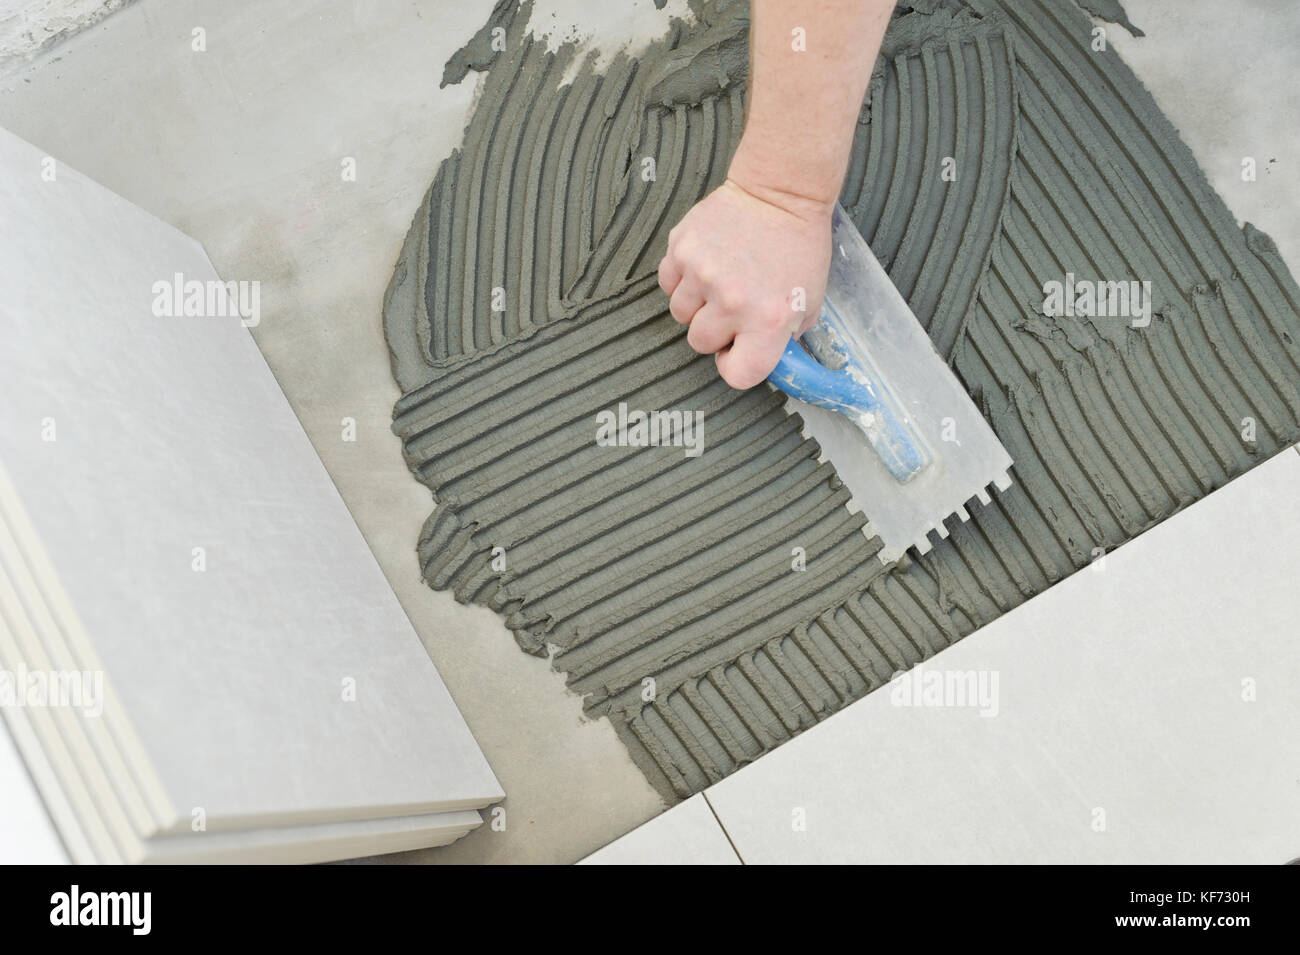 Laying ceramic tiles troweling mortar onto a concrete floor in laying ceramic tiles troweling mortar onto a concrete floor in preparation for laying white floor tile dailygadgetfo Choice Image